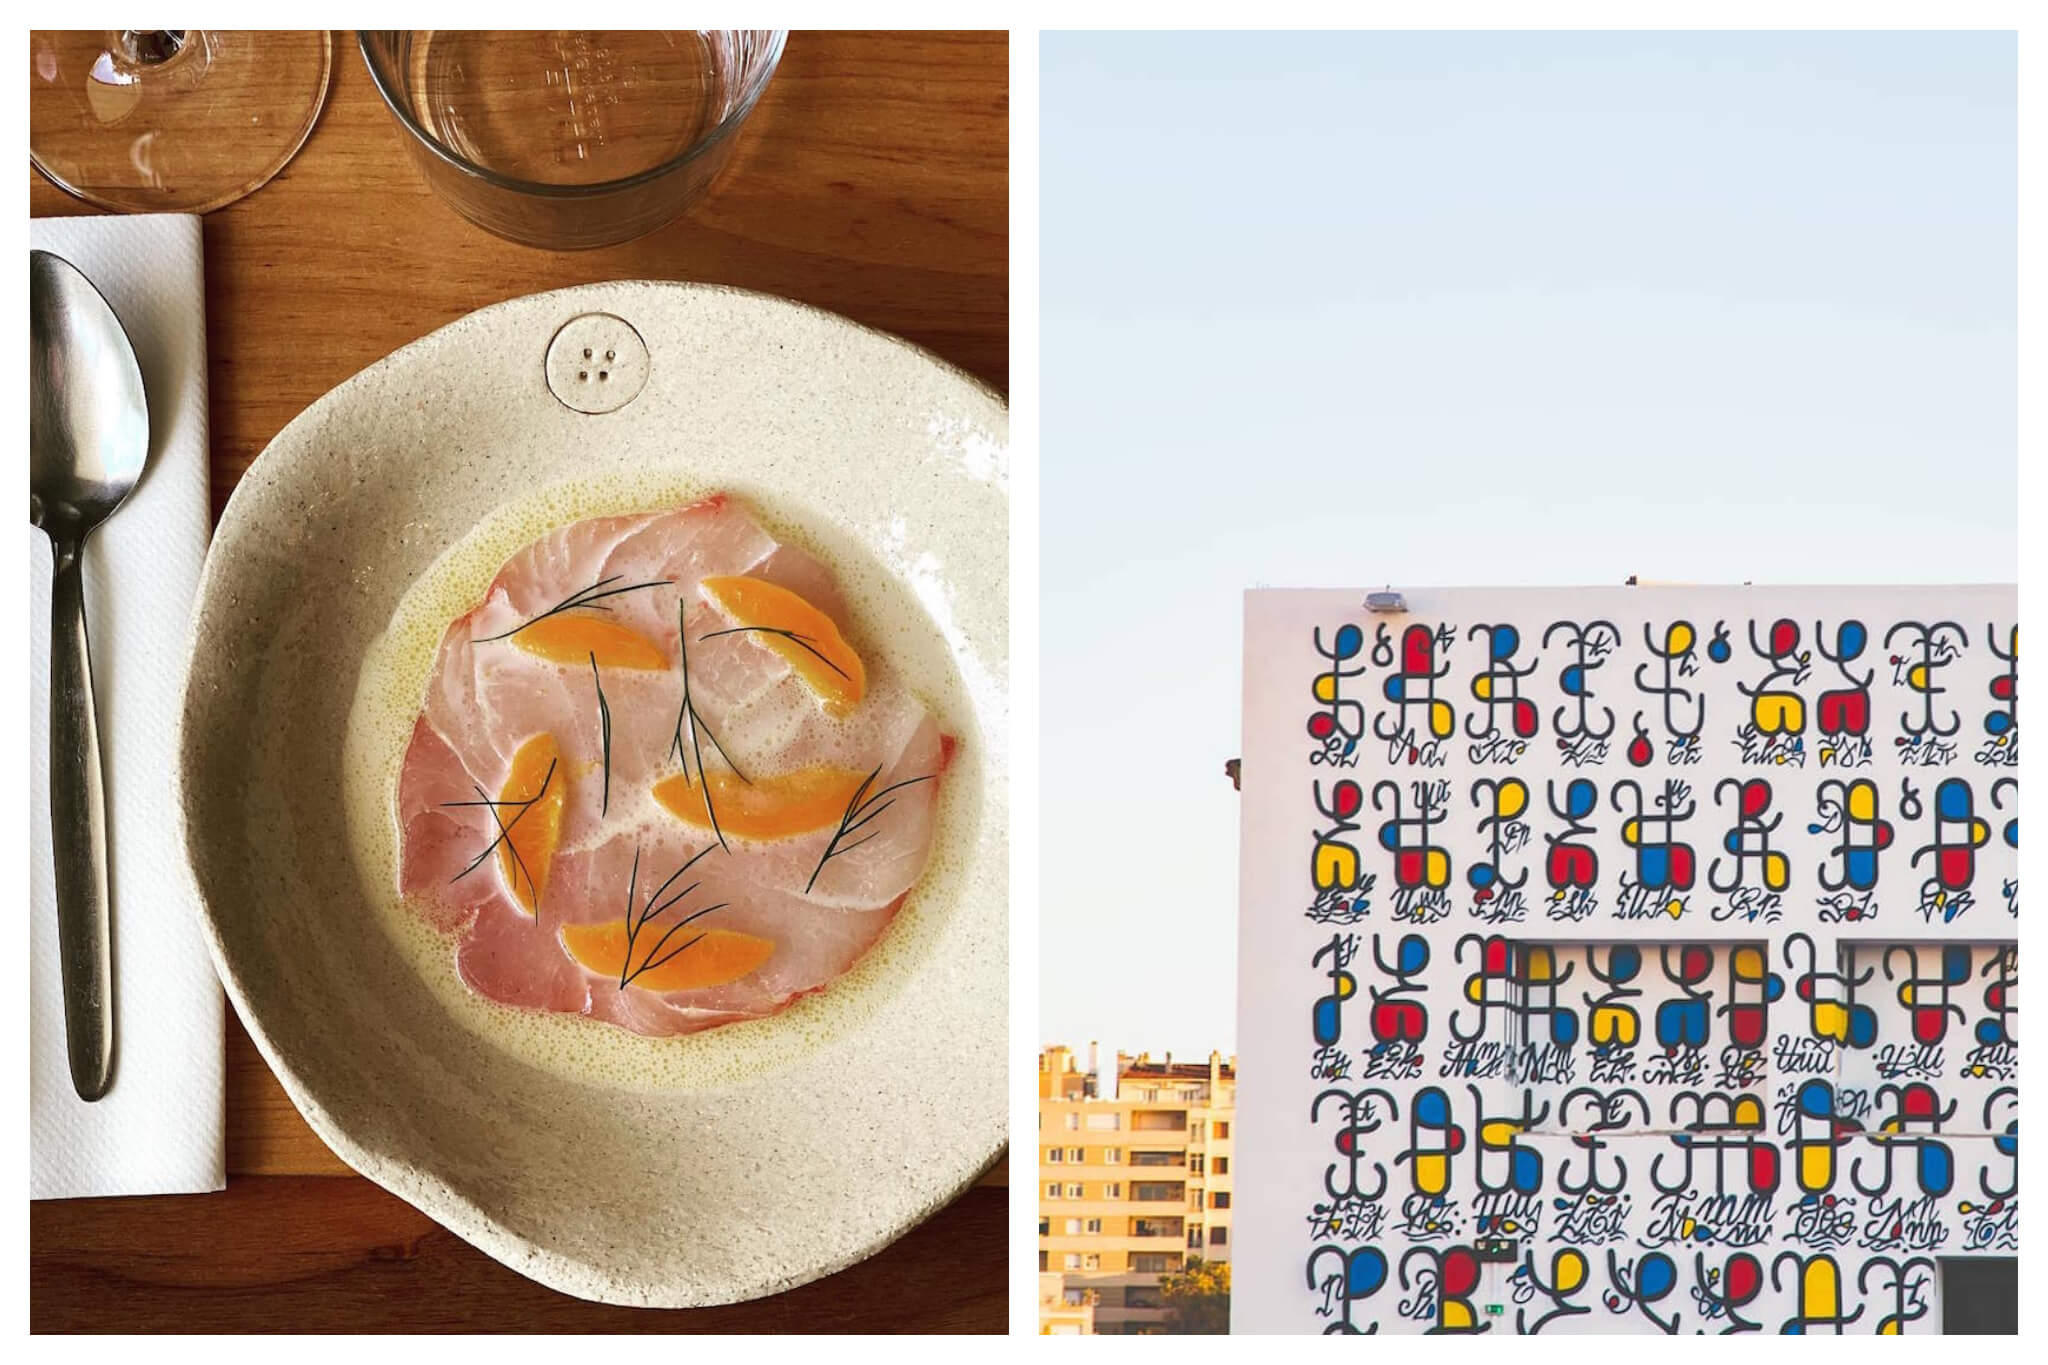 A fancy plated dish of gastronomy at La Mercerie: some sort of fish tarter with orange segments sat atop and sprigs of herbs. On the right is a colourful mural  of abstract figures which seem to represent persons and how they interact in the community.